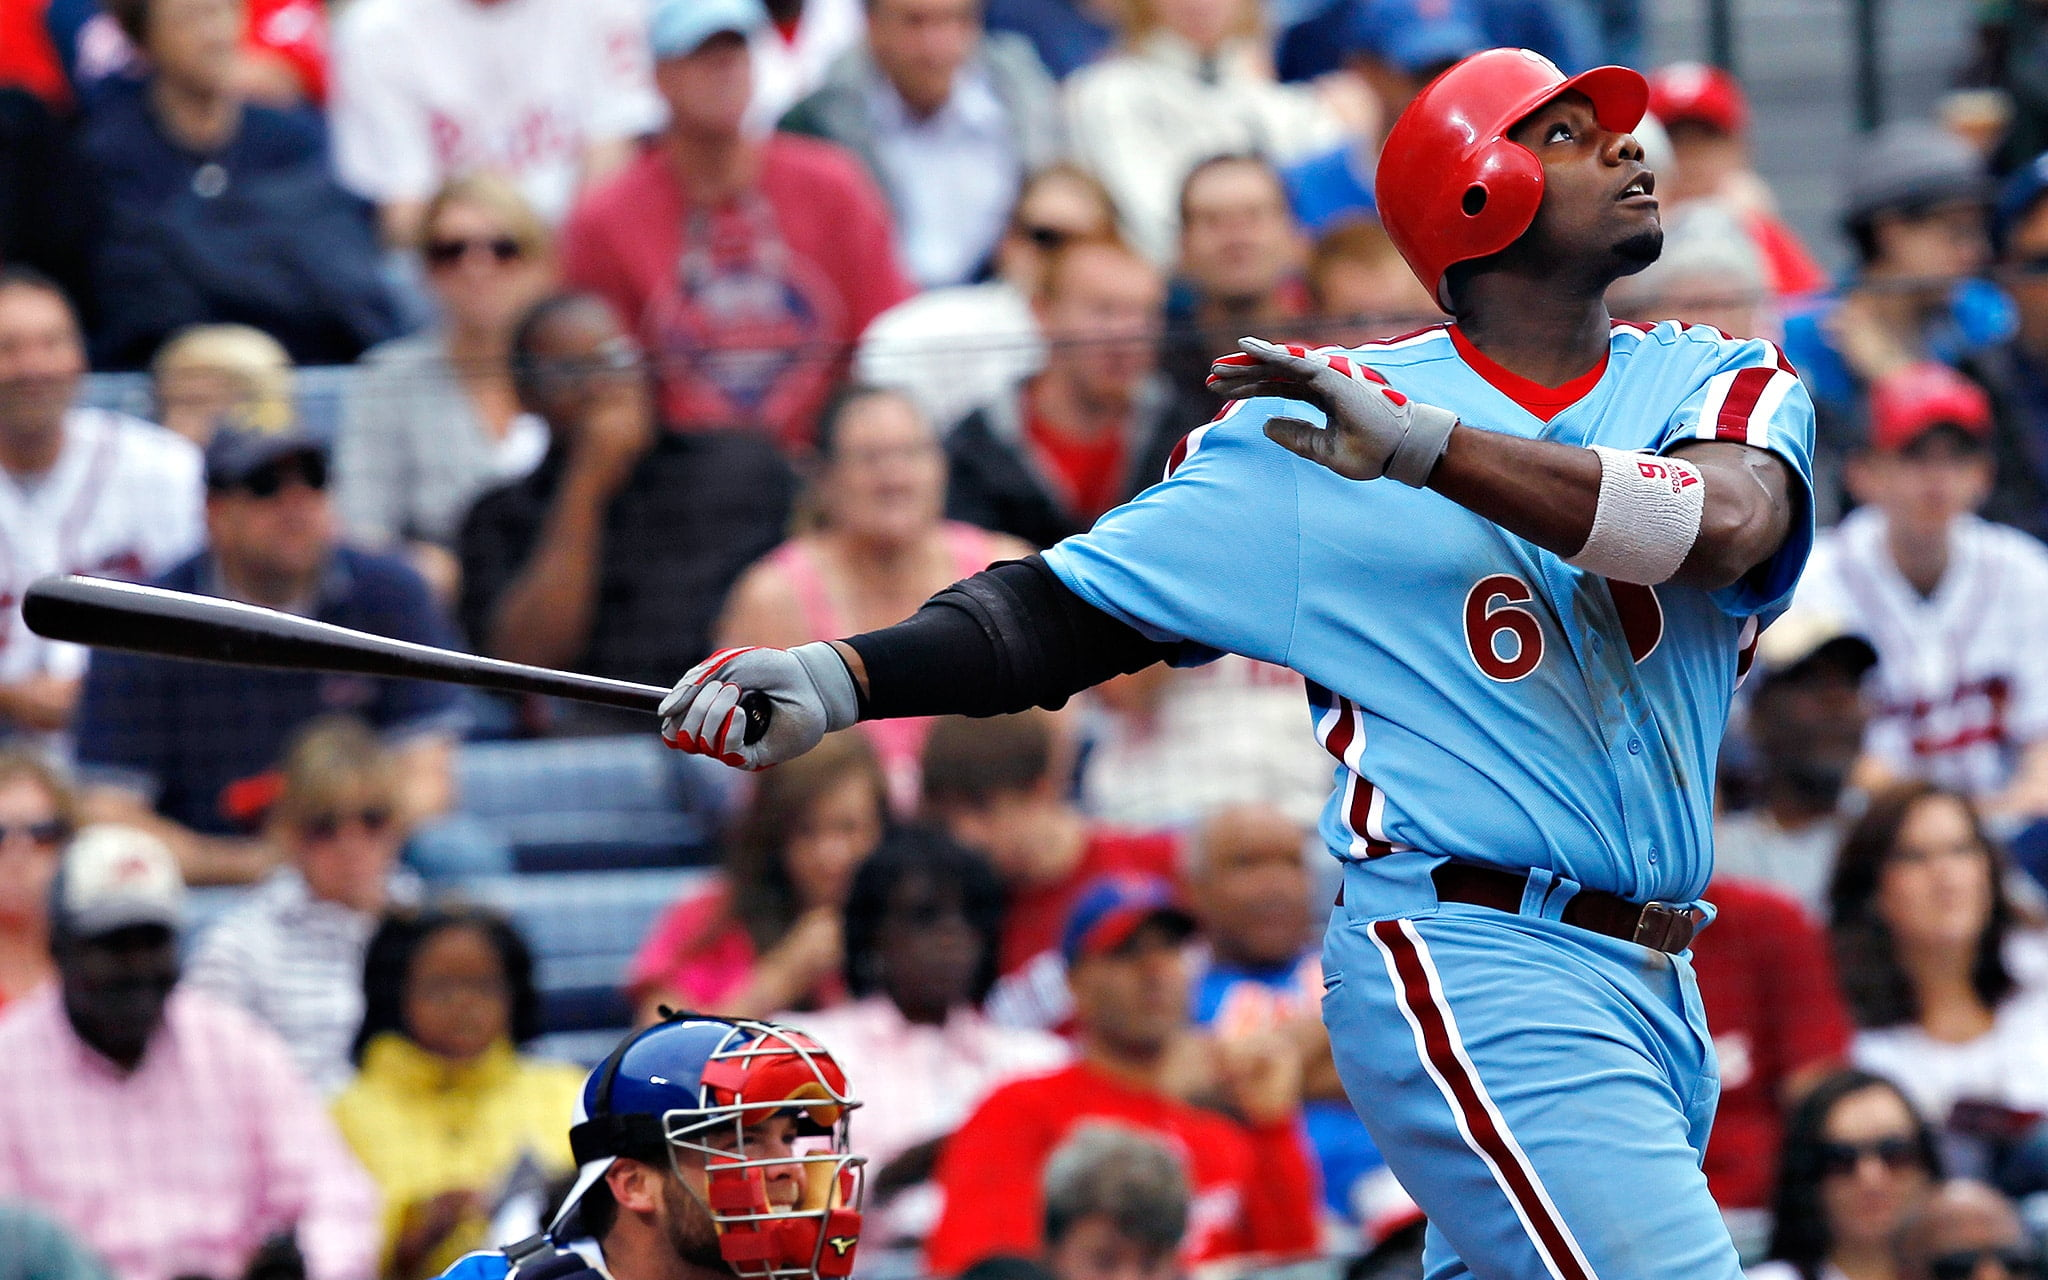 Phillies will wear powder blue throwback uniforms at times in 2018 c9e7c5c5ed1